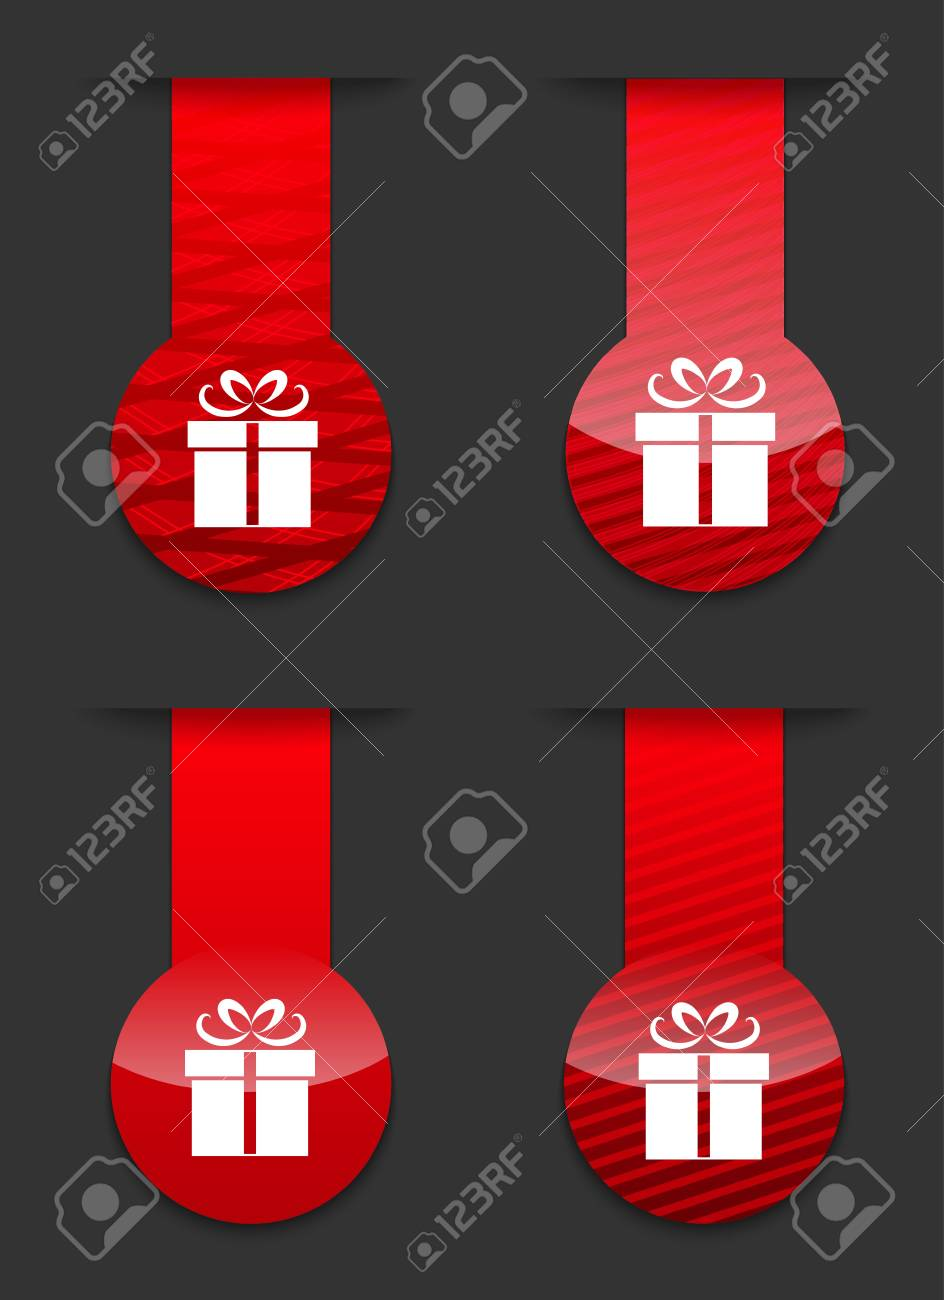 Red glossy design templates with gift icon. Stock Vector - 16002675